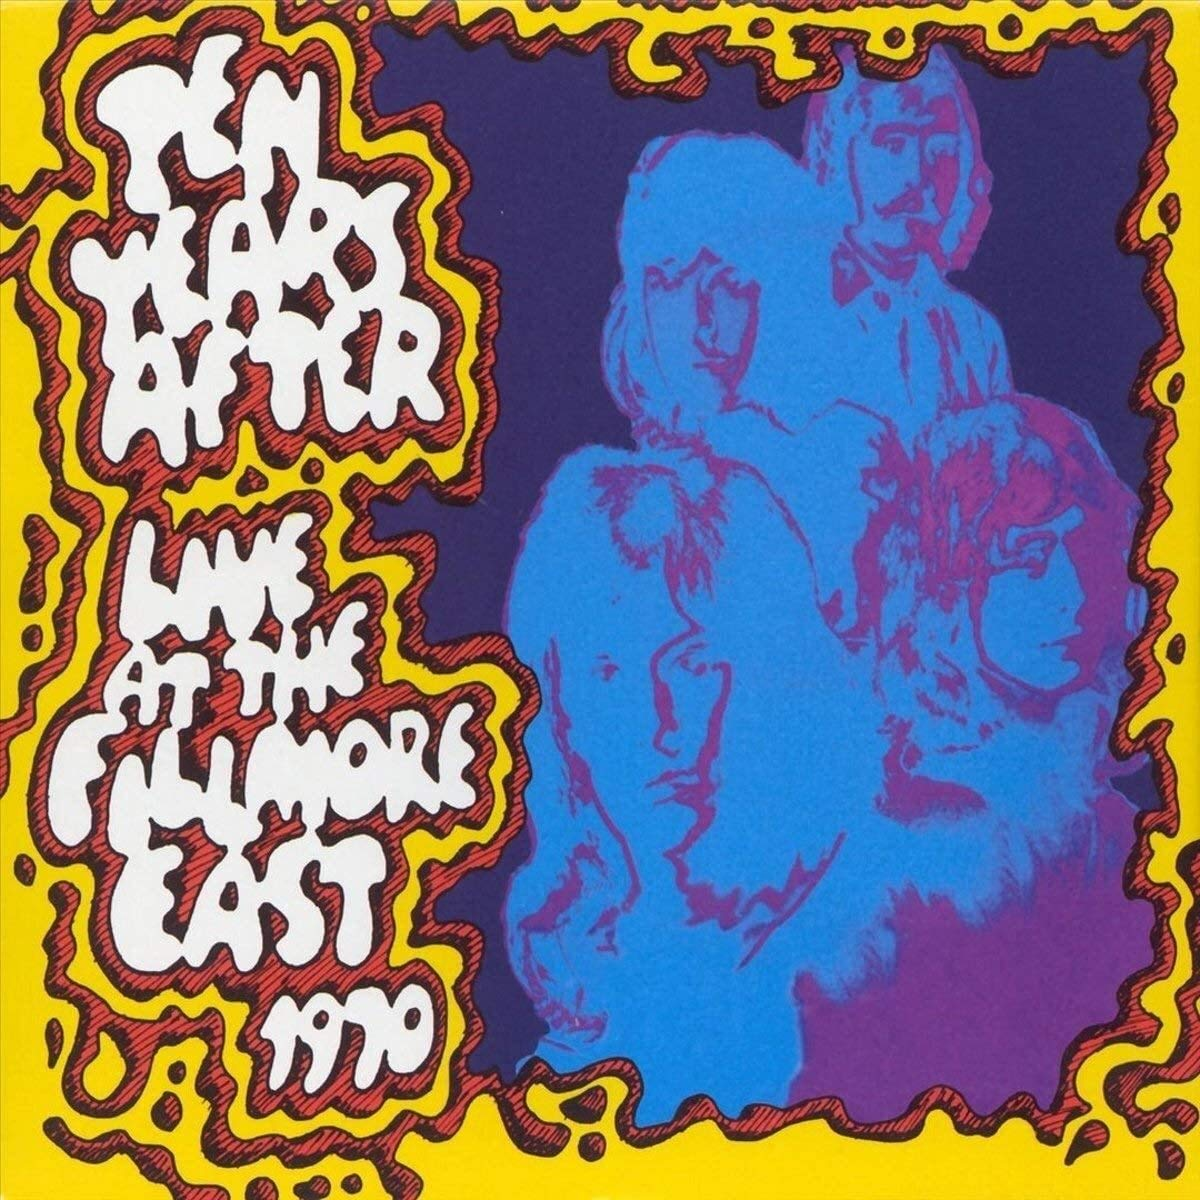 Live At The Fillmore East 1970